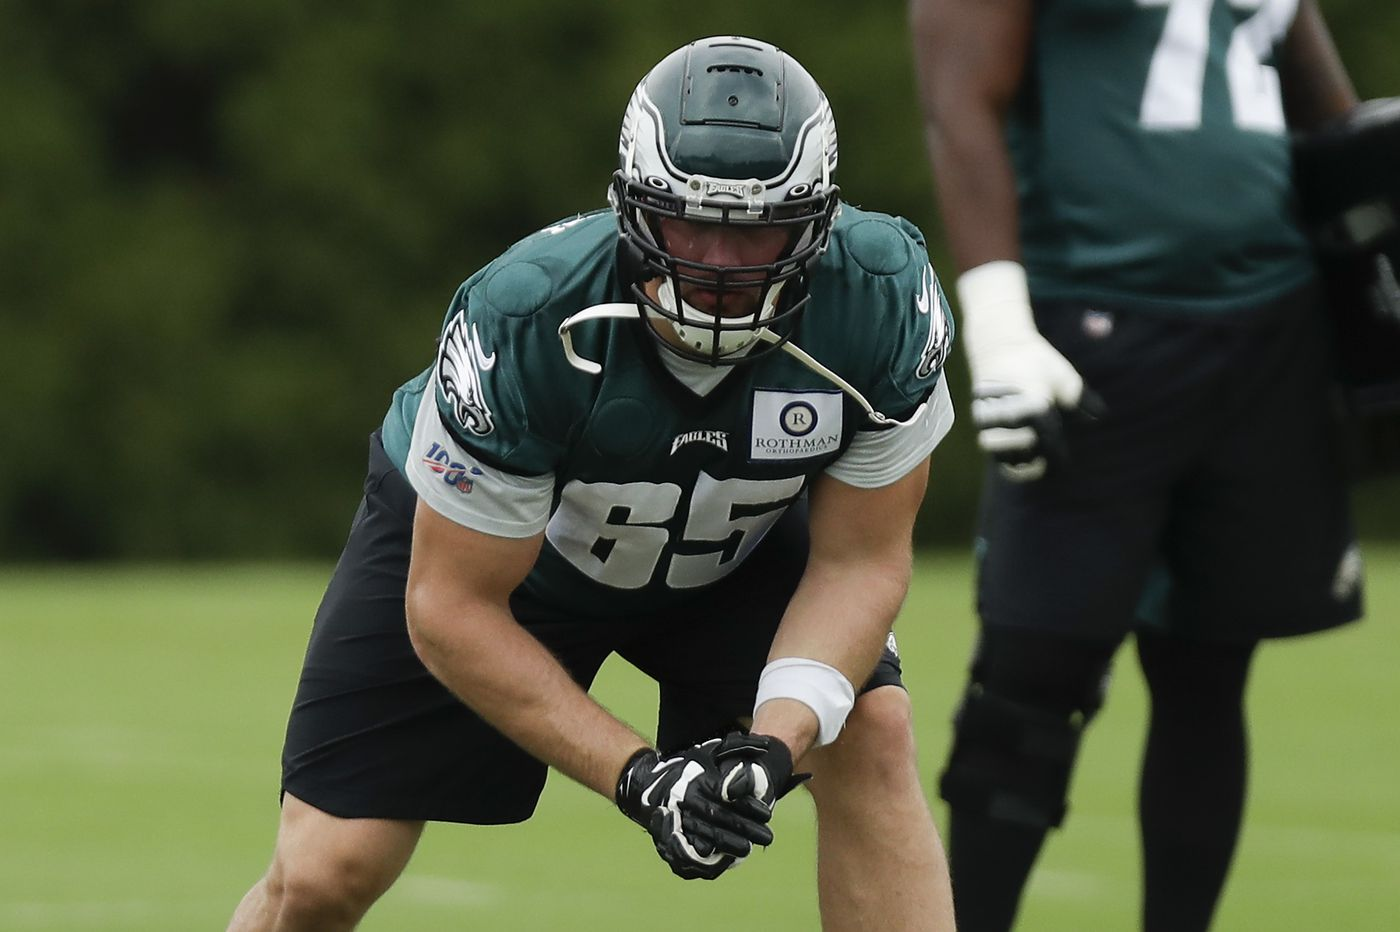 The Eagles' Lane Johnson had minor ankle surgery in August